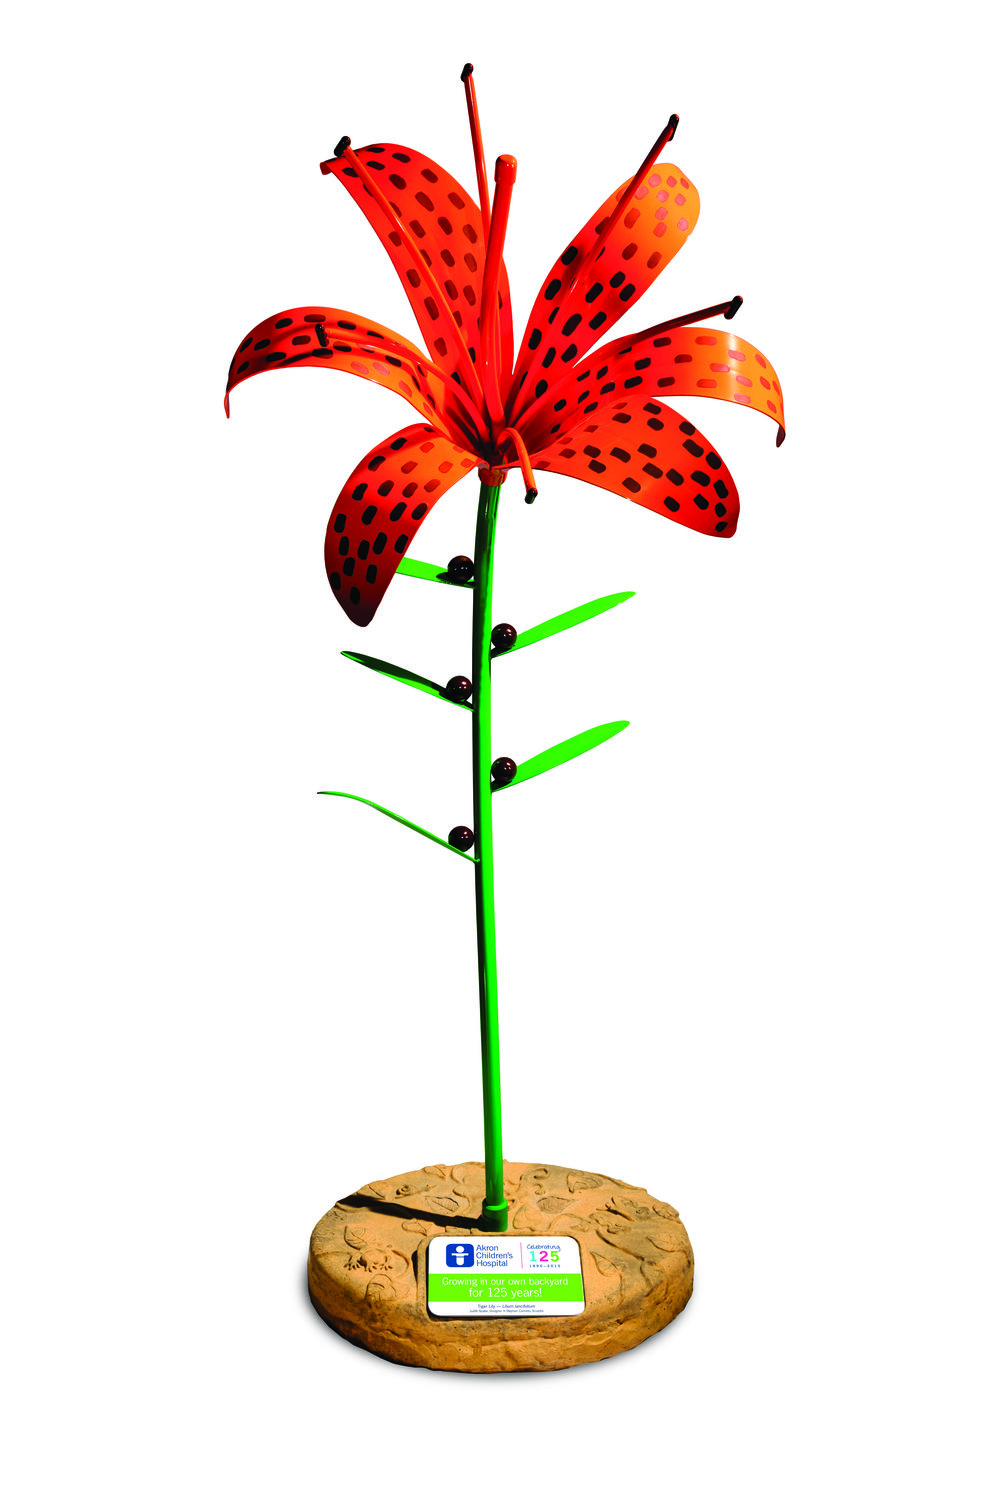 tigerlily_plaque_4CHR - Copy.jpg